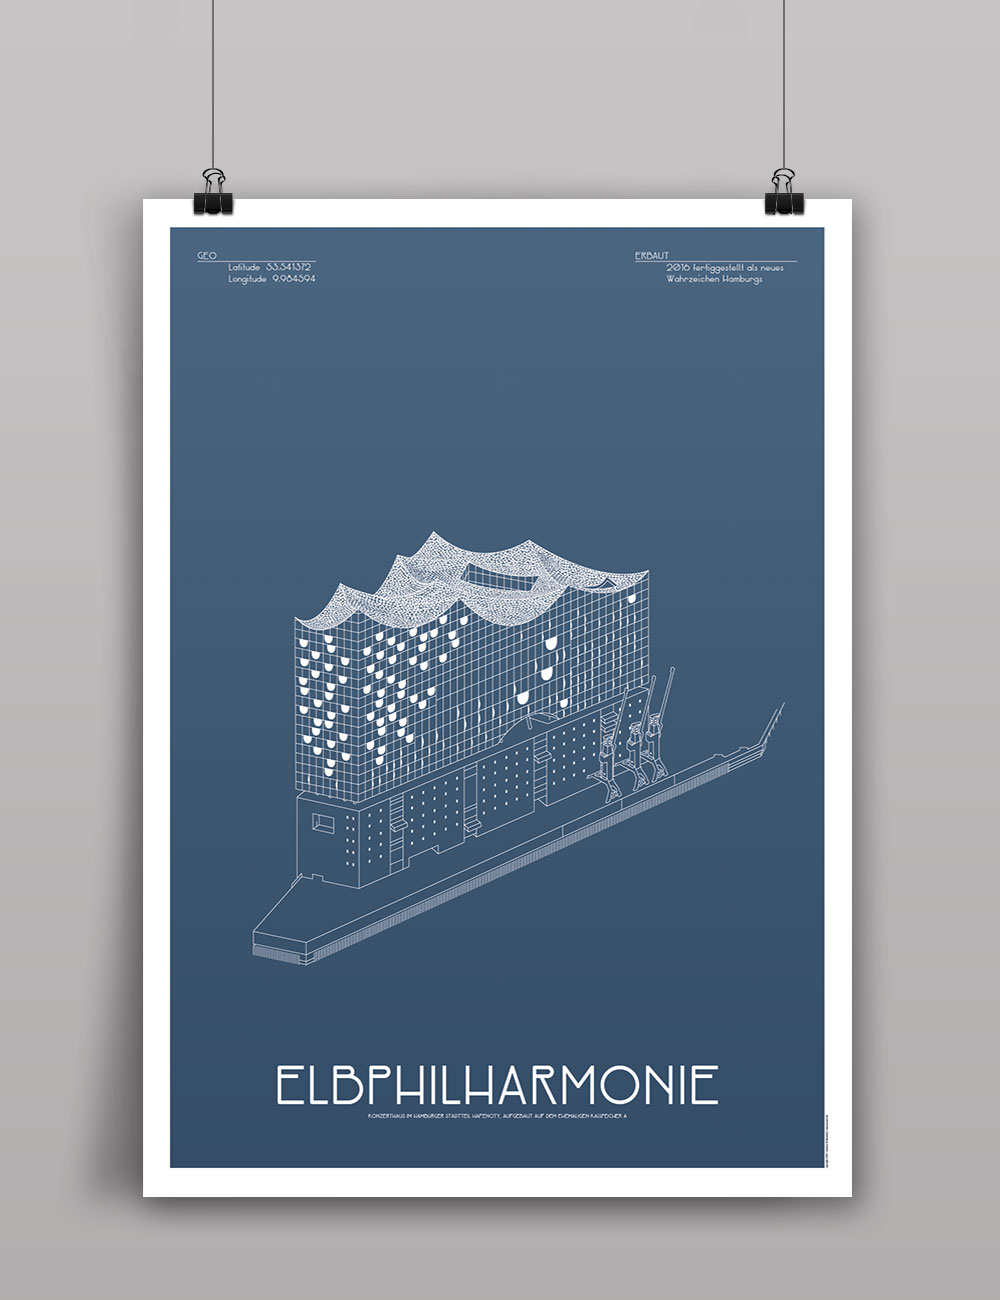 elbphilharmonie hamburg poster architektur illustration blau jo 39 s b ro f r gestaltung. Black Bedroom Furniture Sets. Home Design Ideas